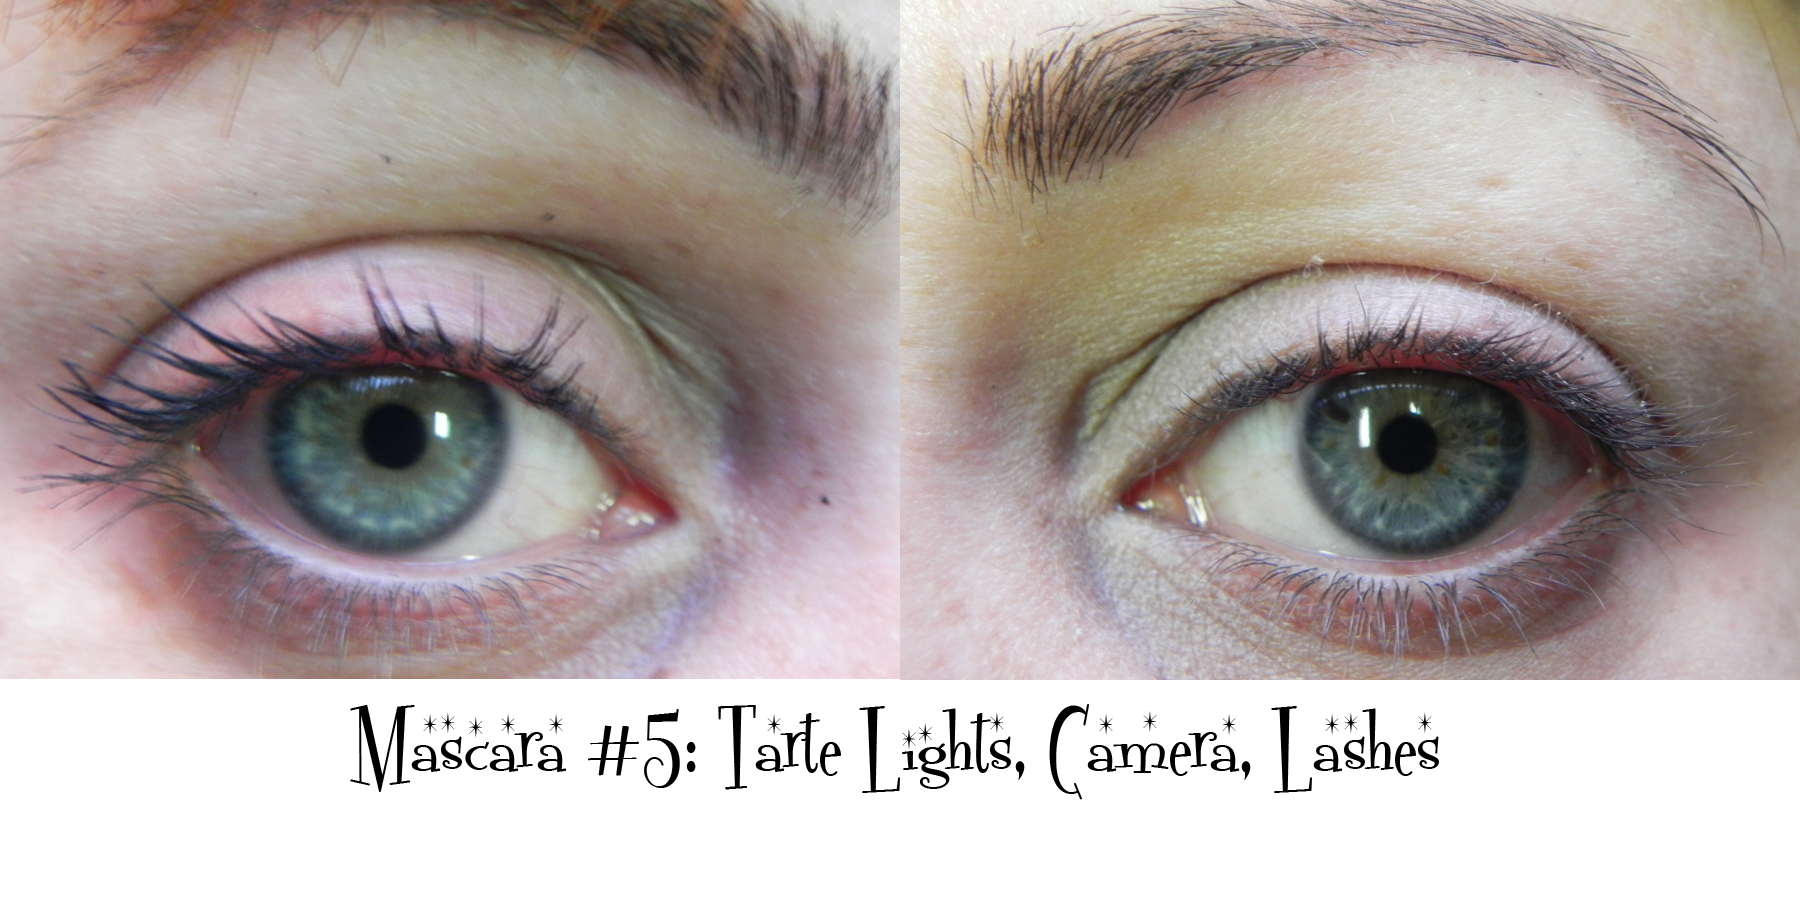 Lights, Camera, Lashes 4-in-1 mascara by Tarte #13